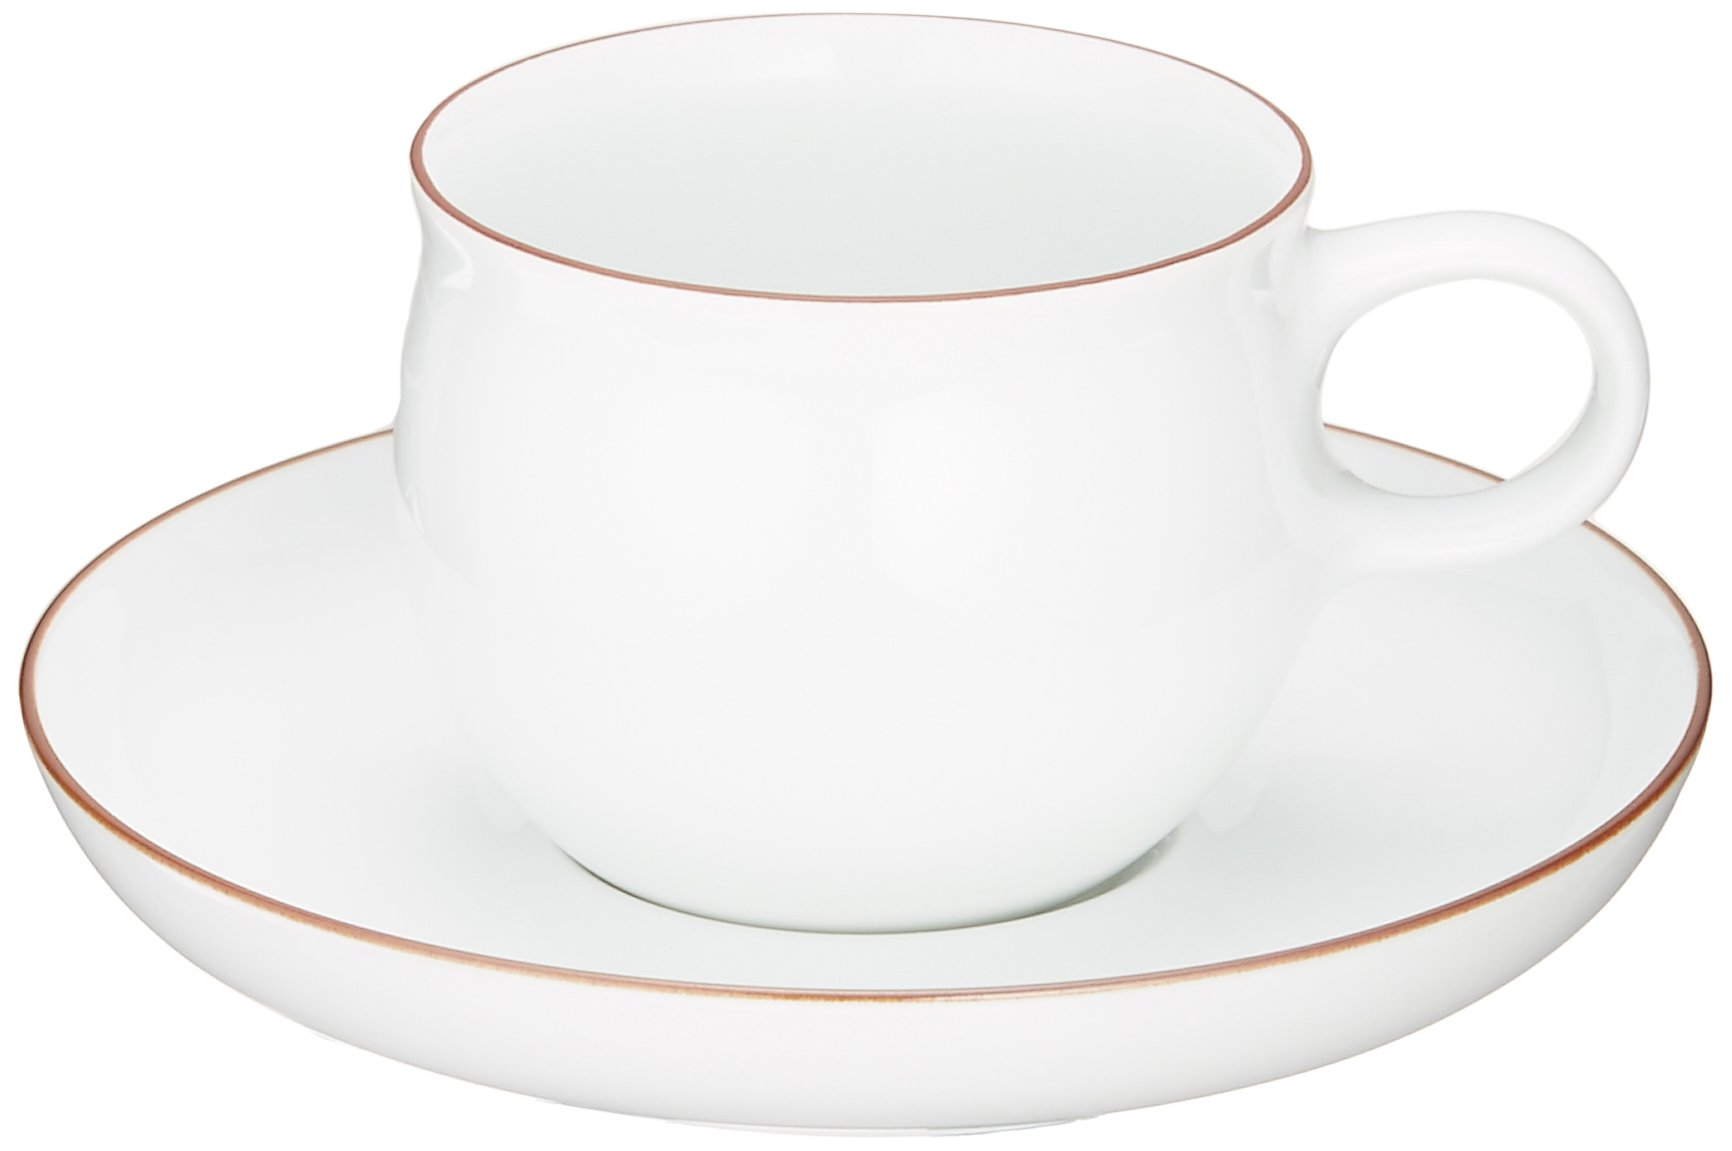 Hakusan pottery G type coffee cup and saucer